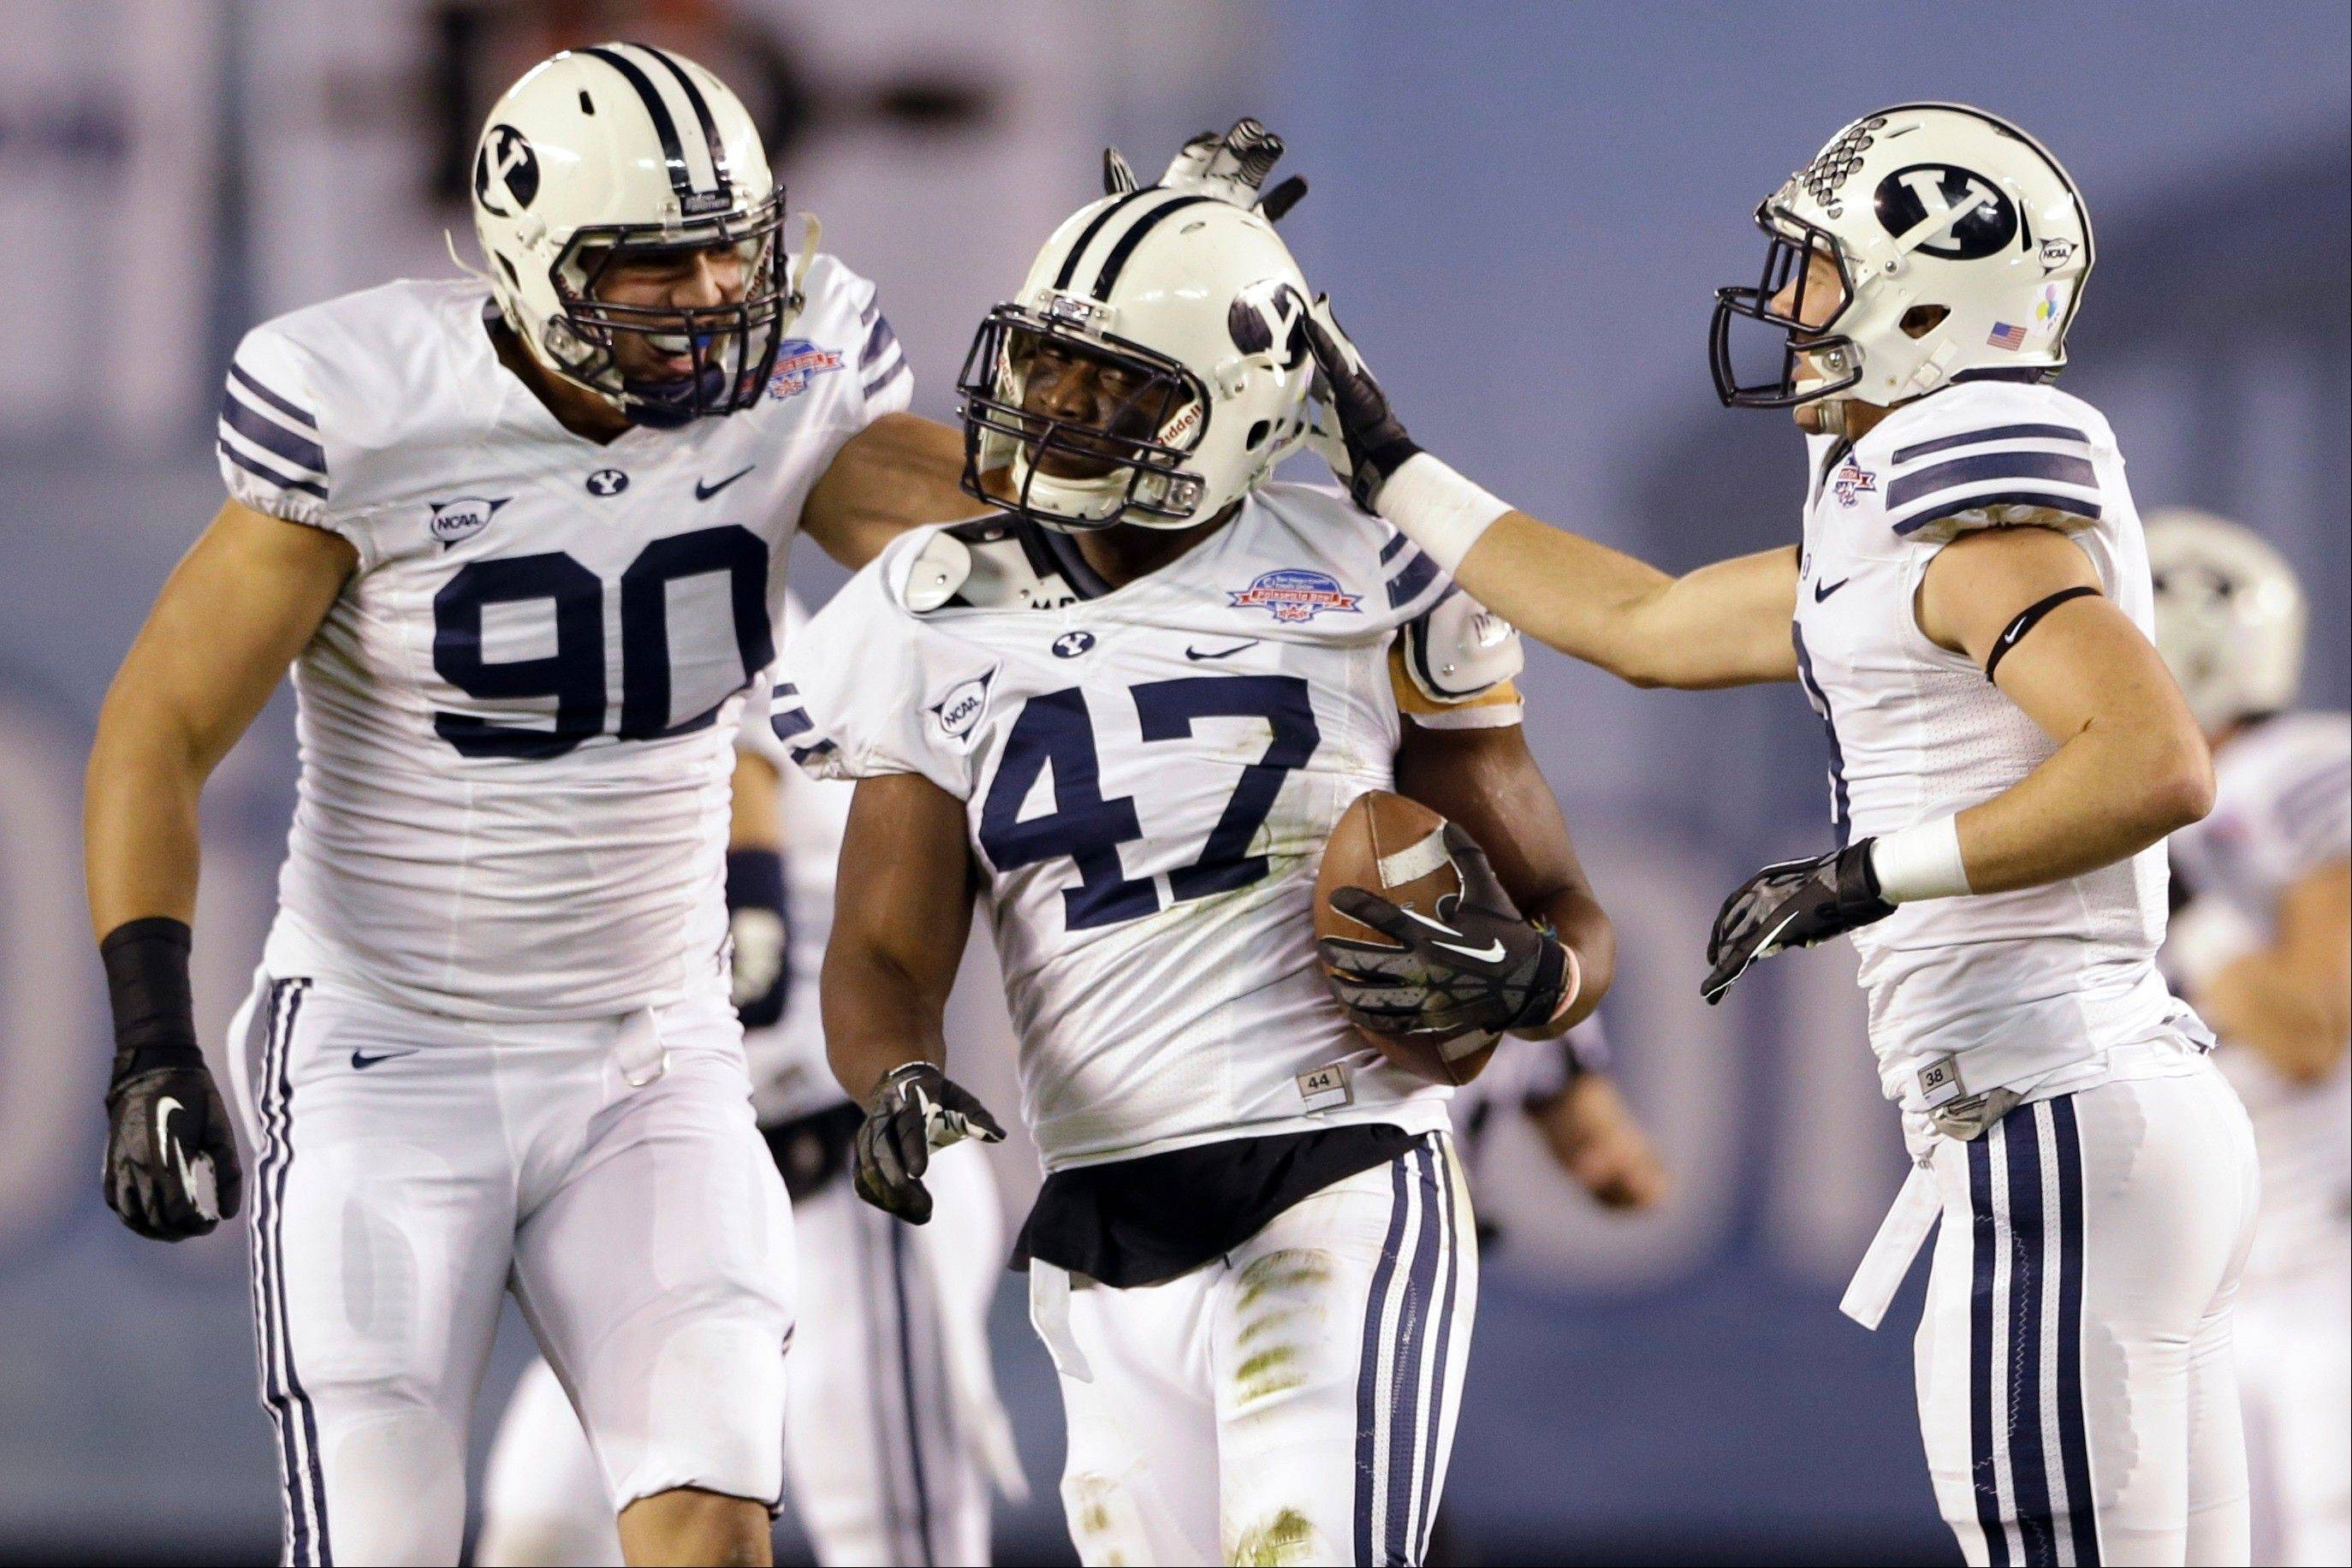 BYU linebacker Ezekiel Ansah, center, is congratulated by Bronson Kaufusi, left, and Daniel Sorensen after intercepting a San Diego State pass during the first half of the Poinsettia Bowl in December.